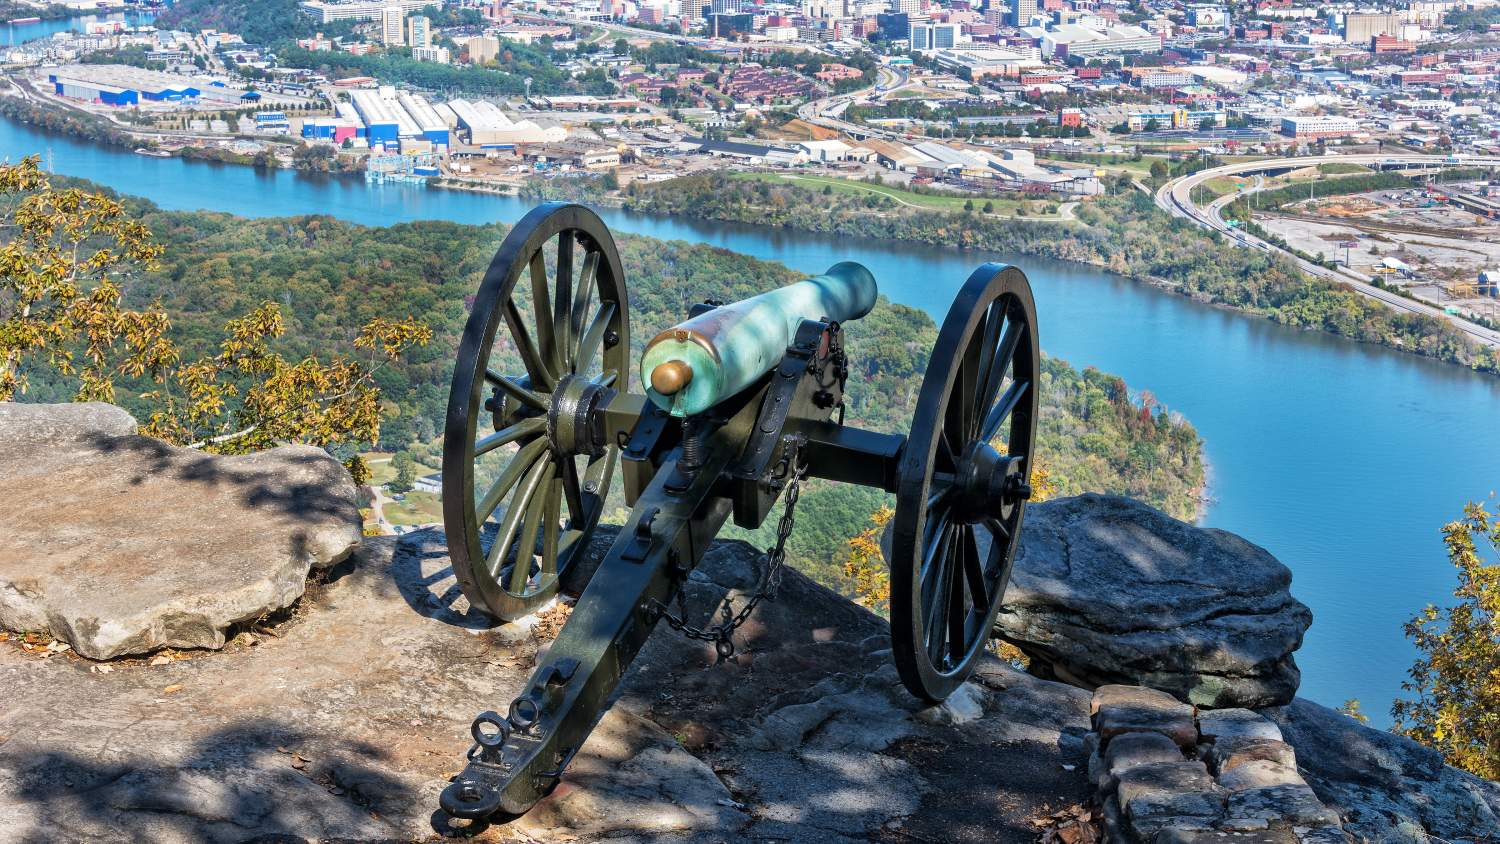 Cannon overlooking Chattanooga at Moccasin Bend National Park